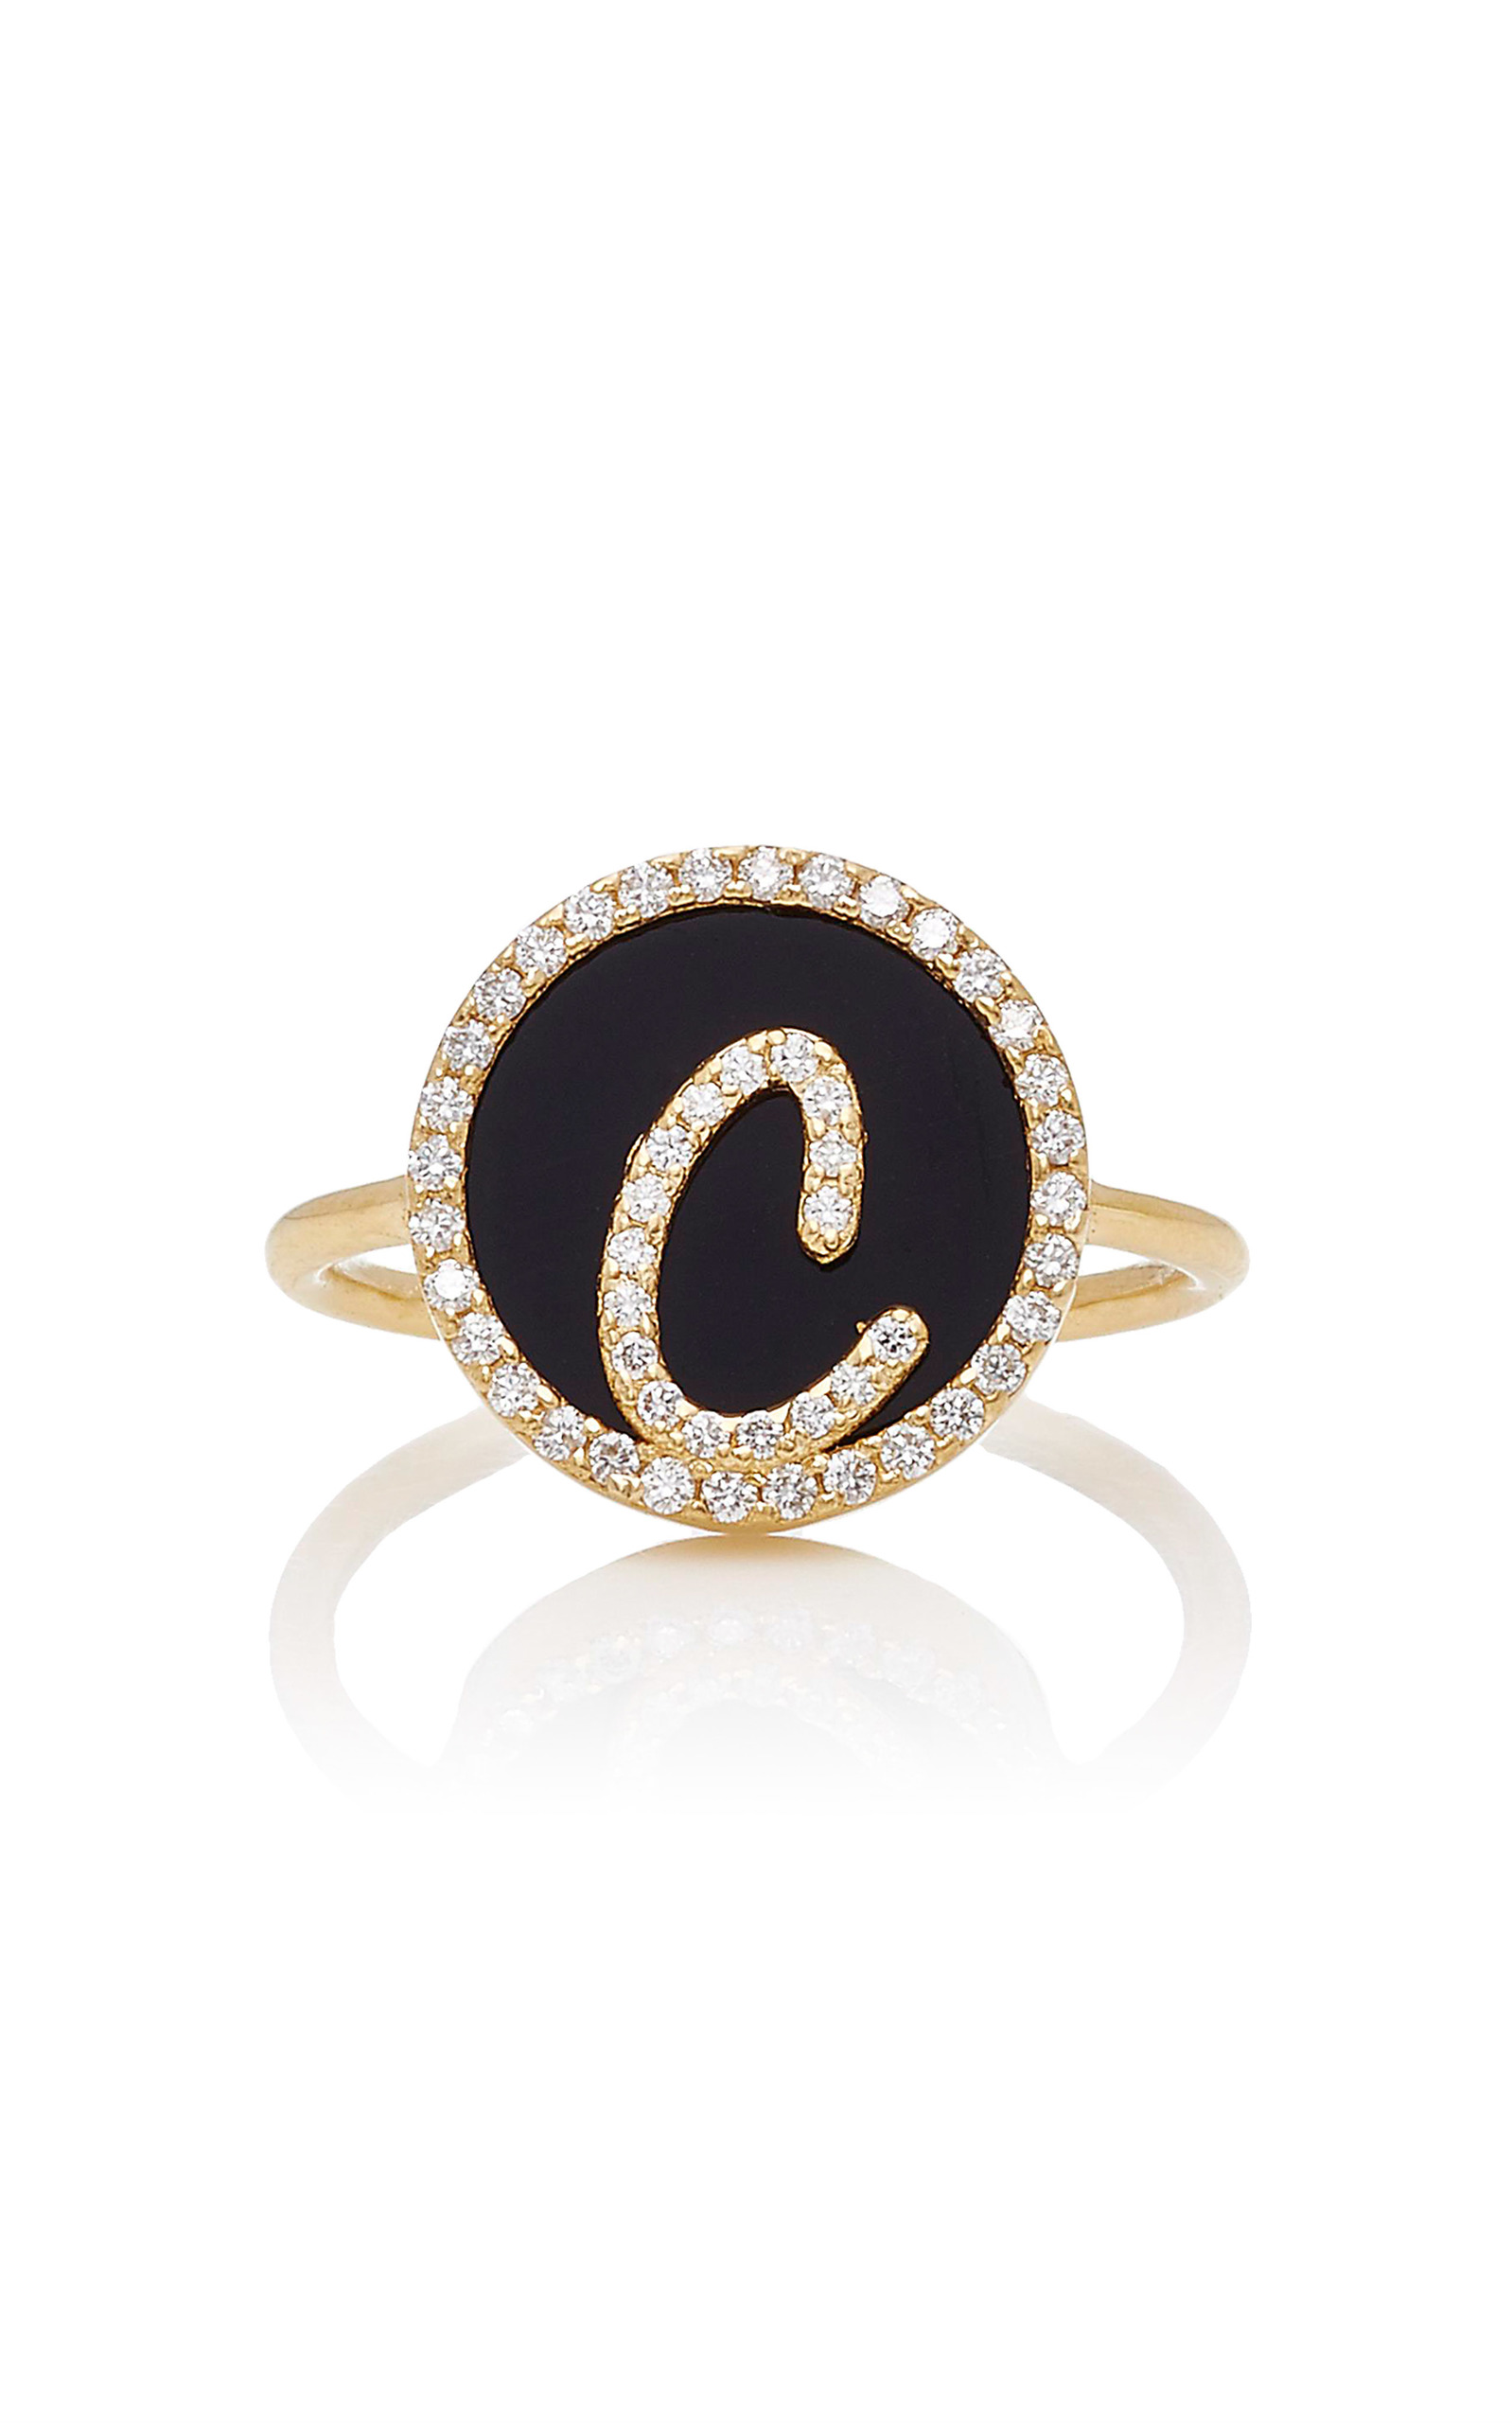 NAMES BY NOUSH M'O EXCLUSIVE: TREASURE DISK ROMAN INITIAL RING WITH ONYX GEMSTONE